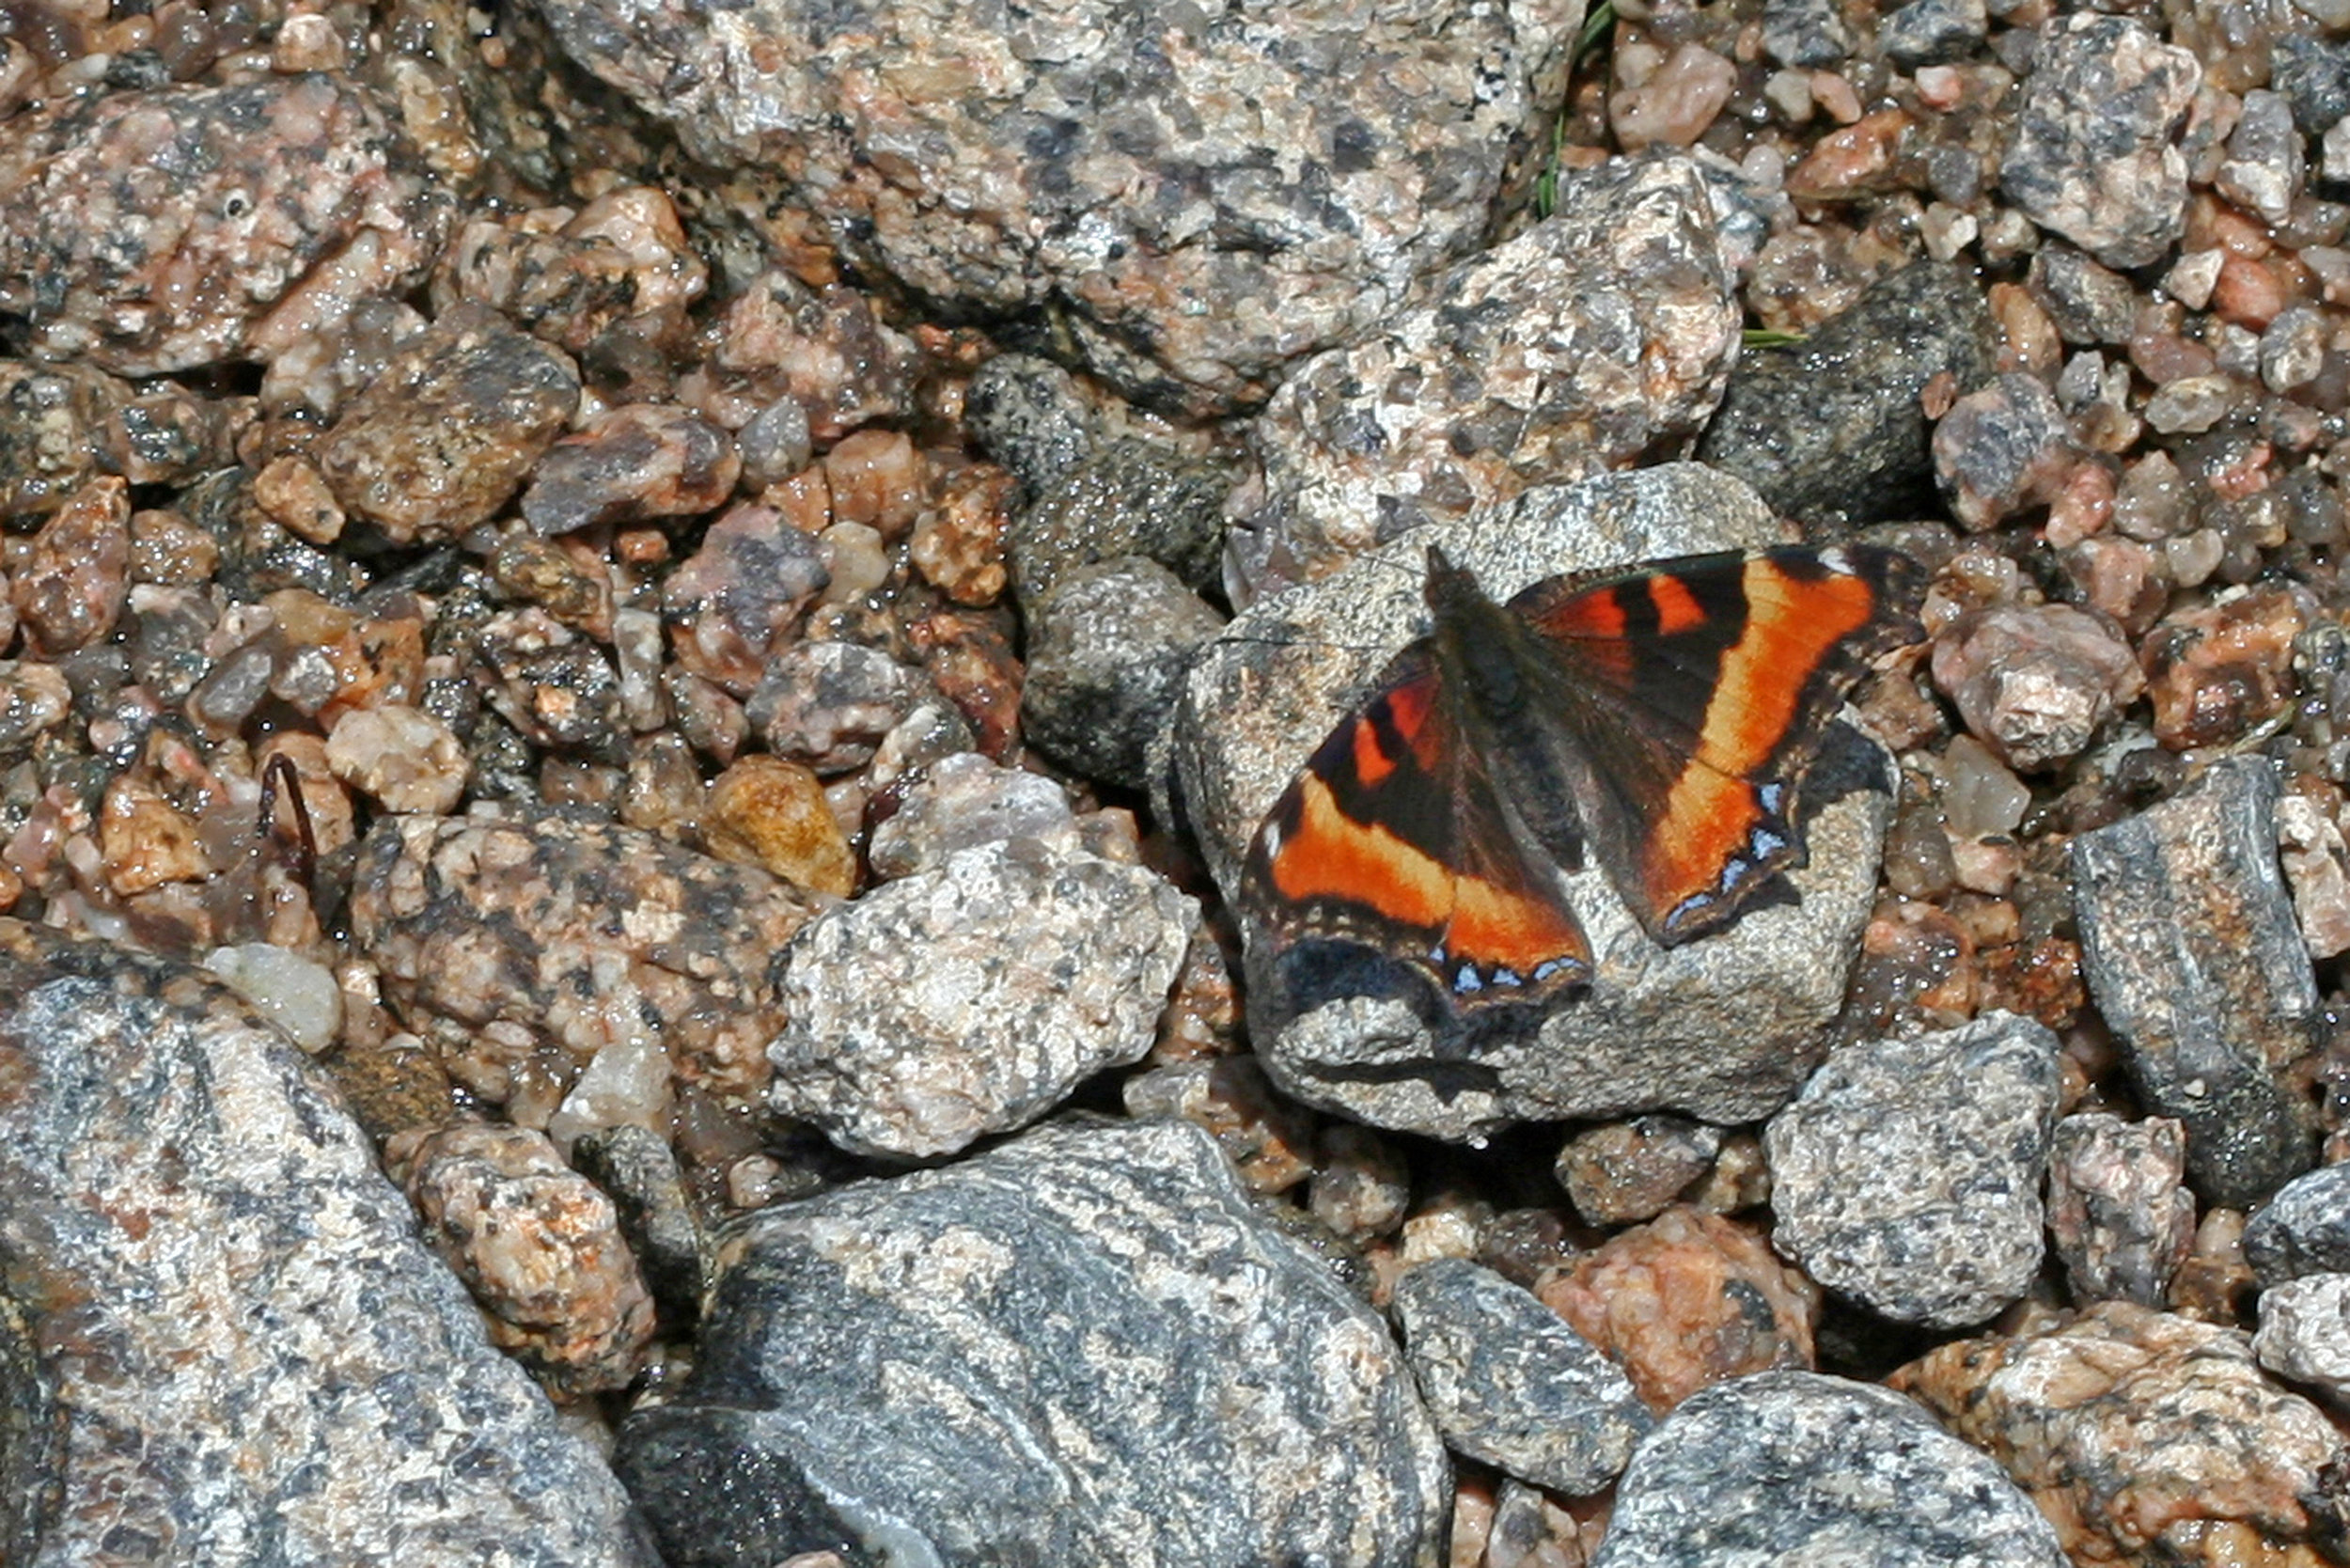 Aglais milberti at Longs Peak in Rocky Mountain NP, Colorado in 2013